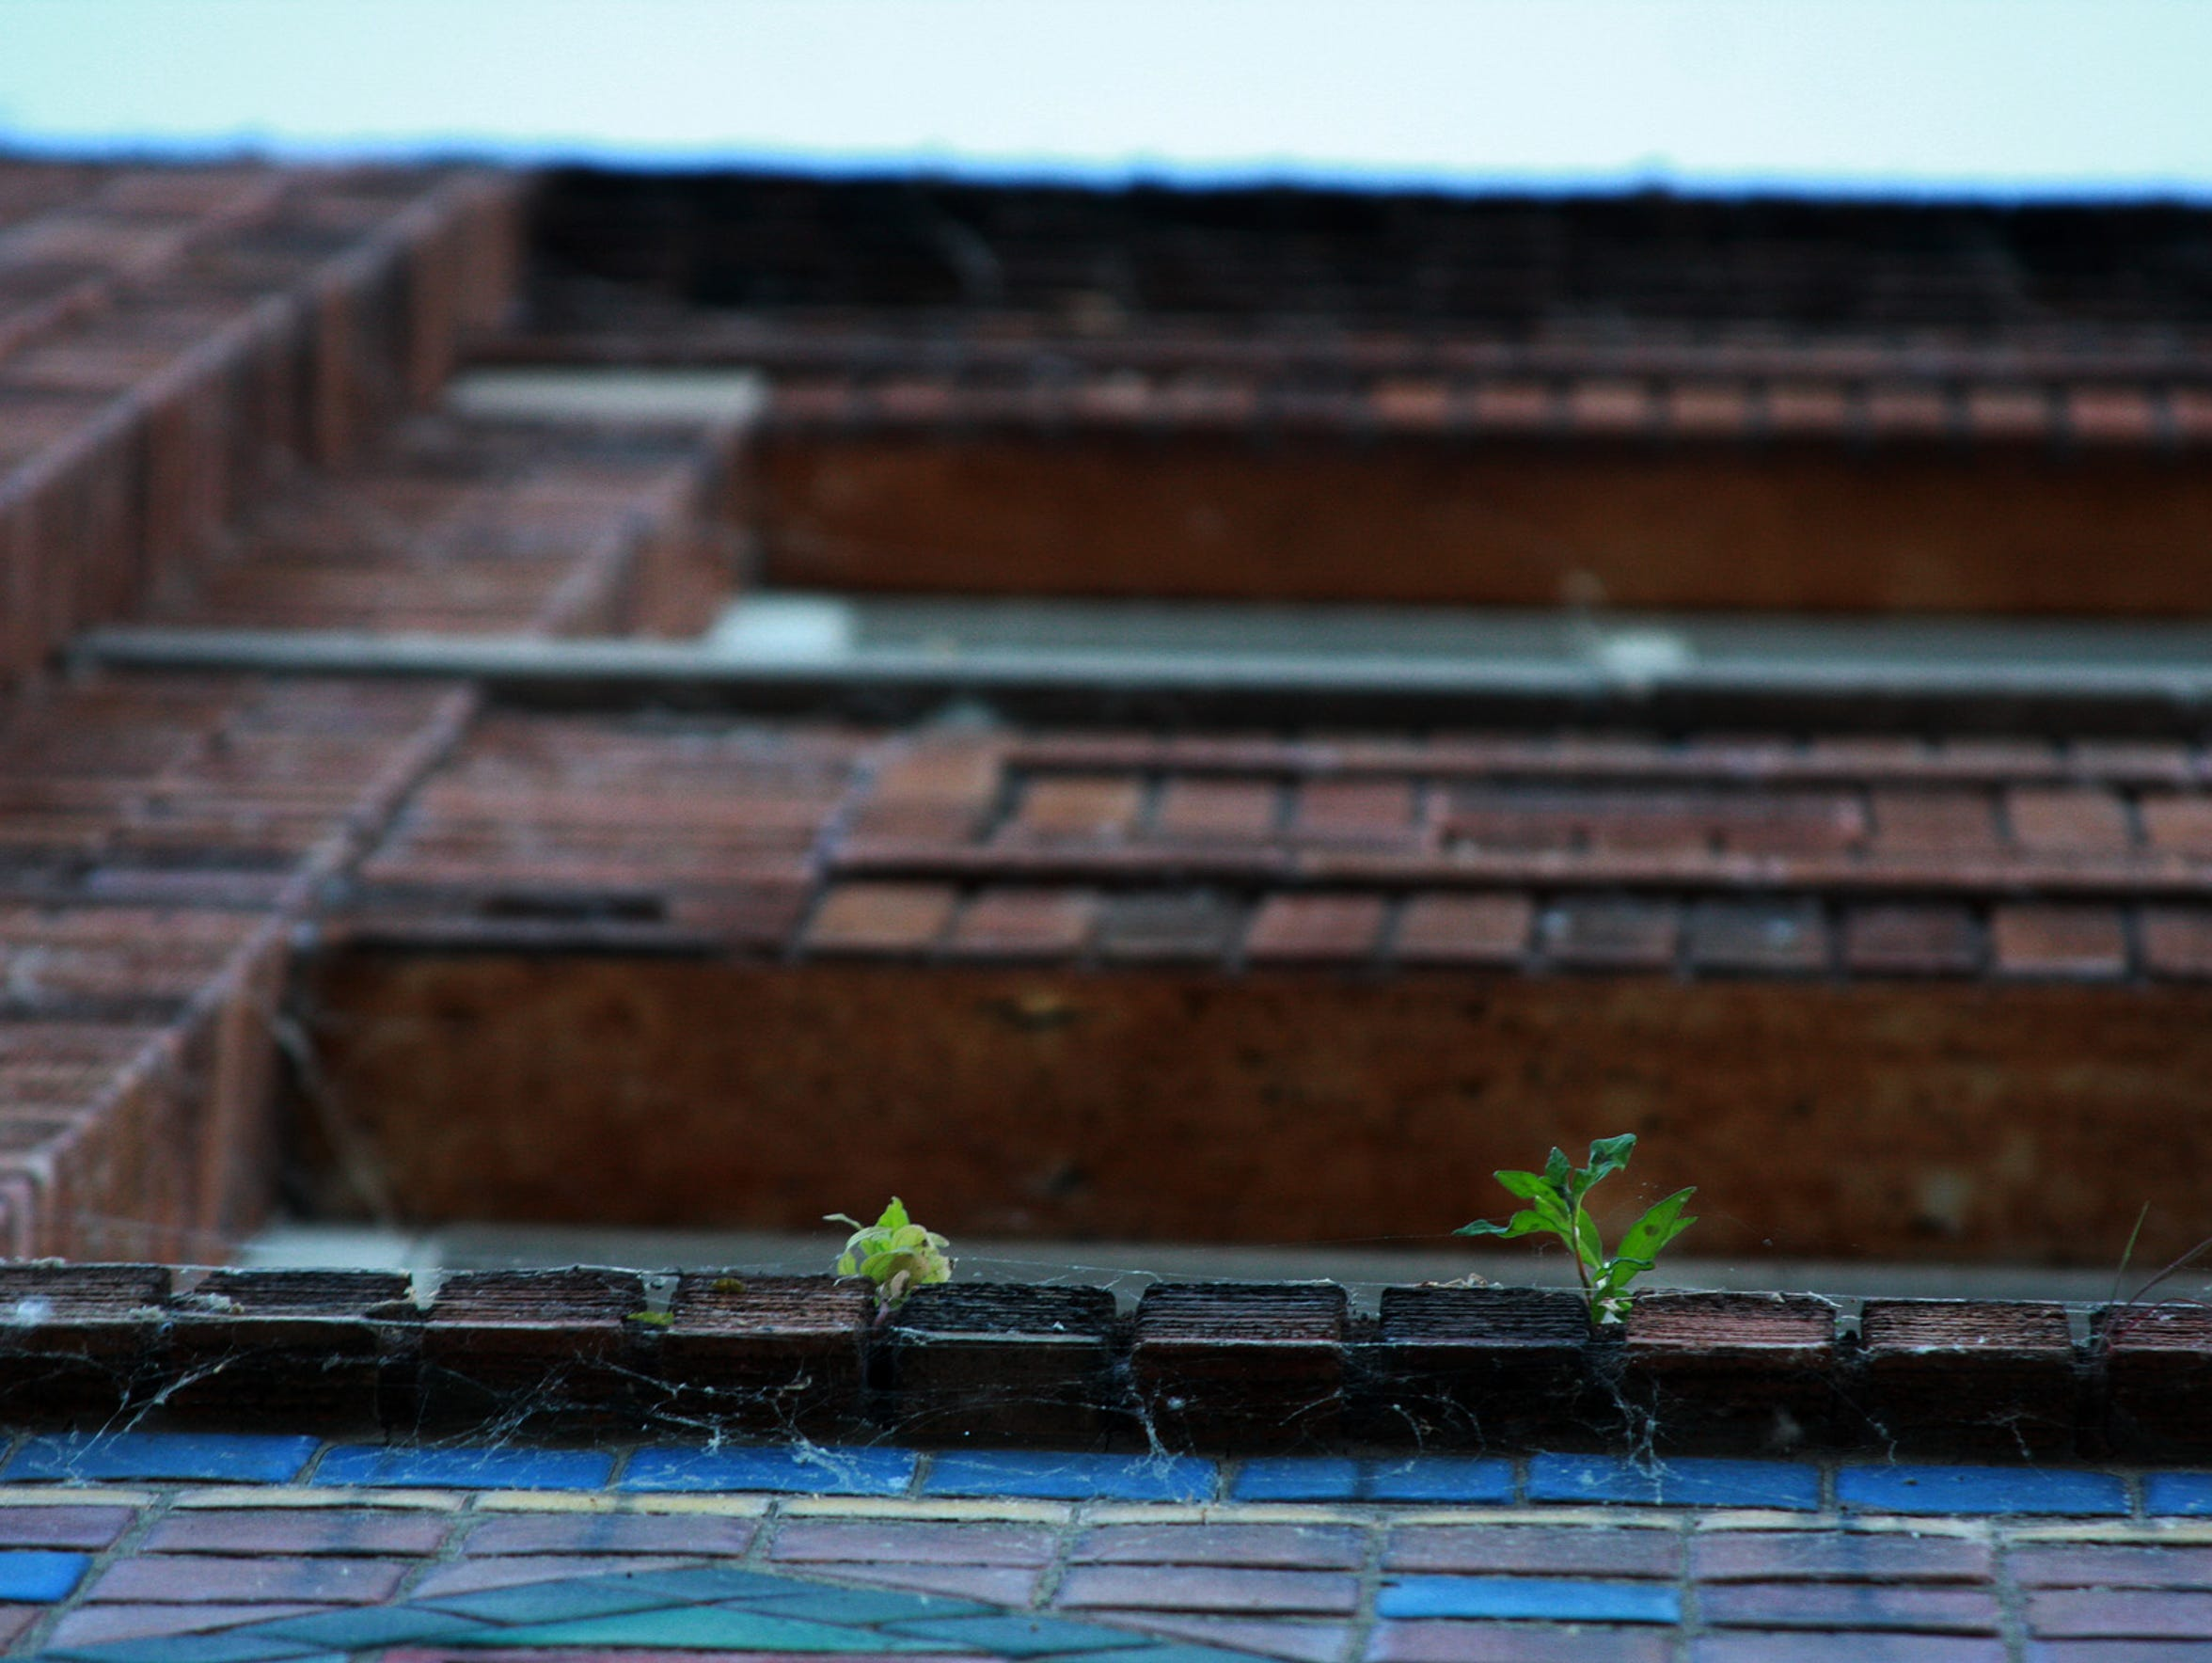 Several small plants sprout out of 180Urban's property